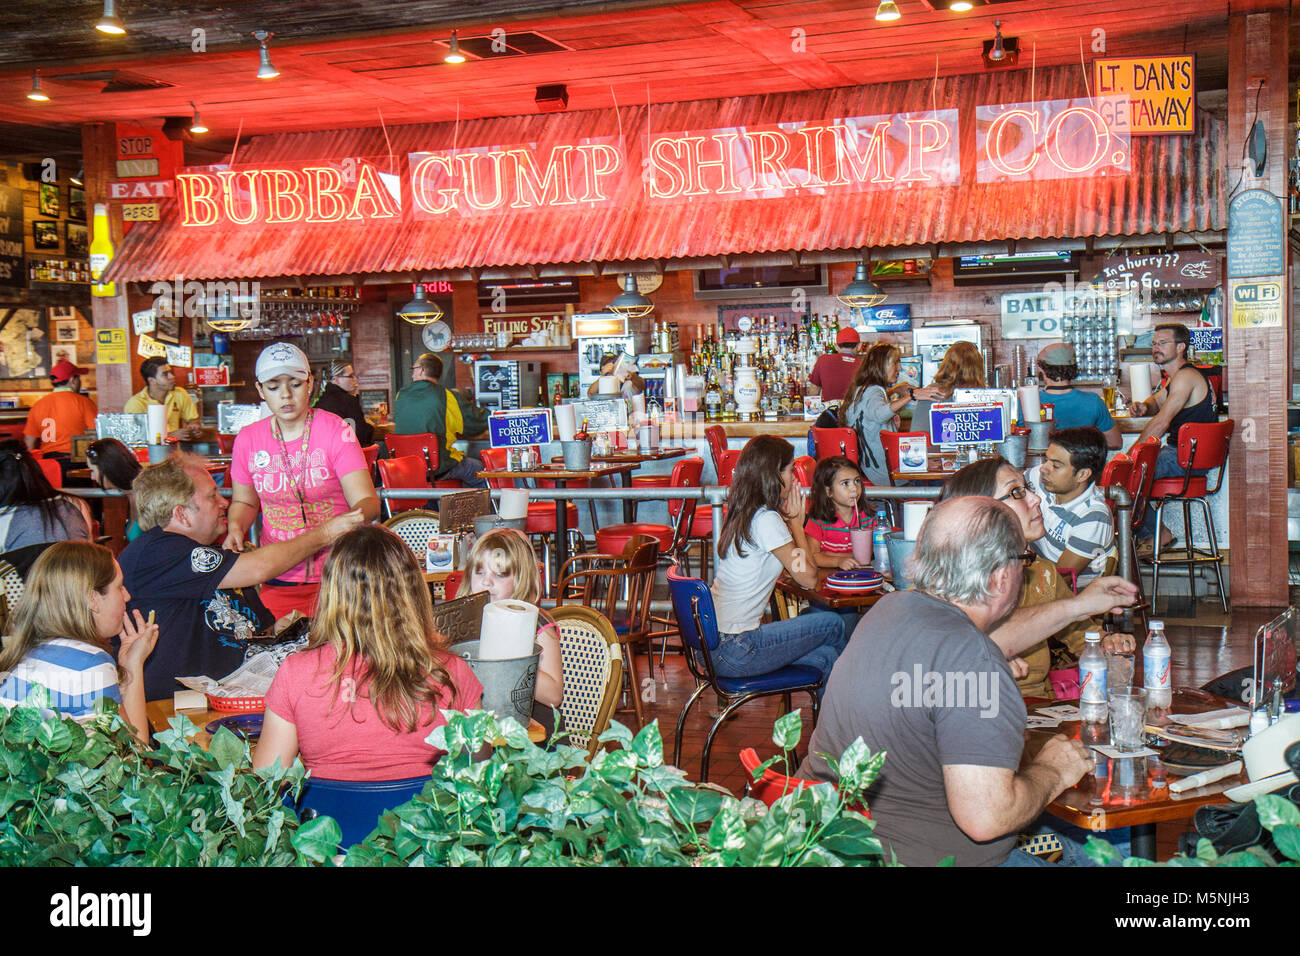 Cancun Mexico Yucatán Peninsula Quintana Roo Cancun International Airport restaurant concession Bubba Gump - Stock Image